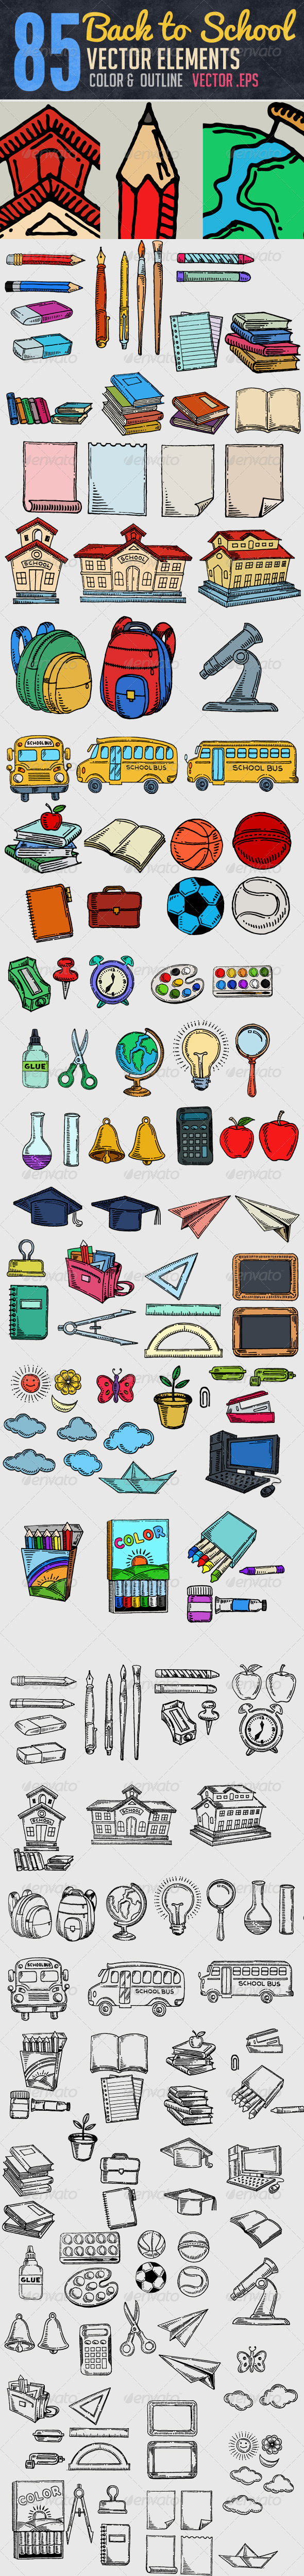 85 Hand Drawn School Elements